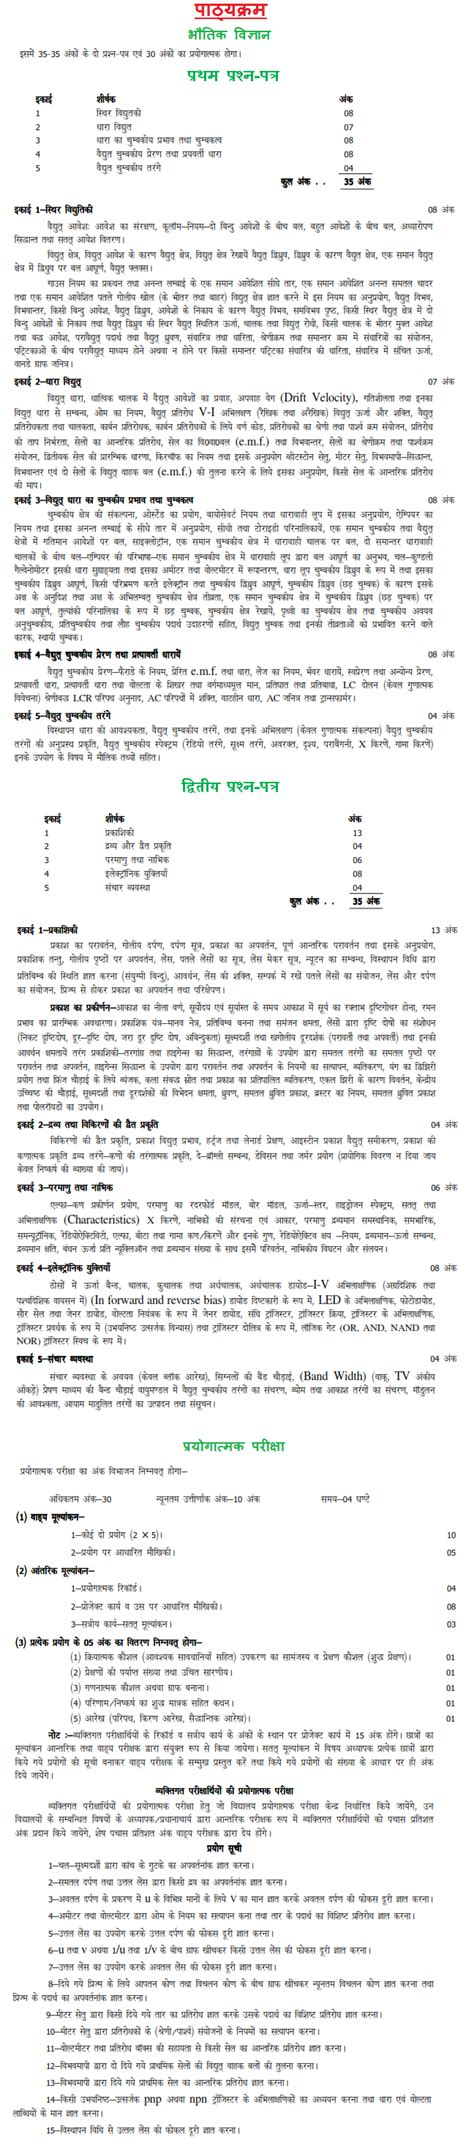 new pattern up board maths syllabus for class 12 up board up board class 12